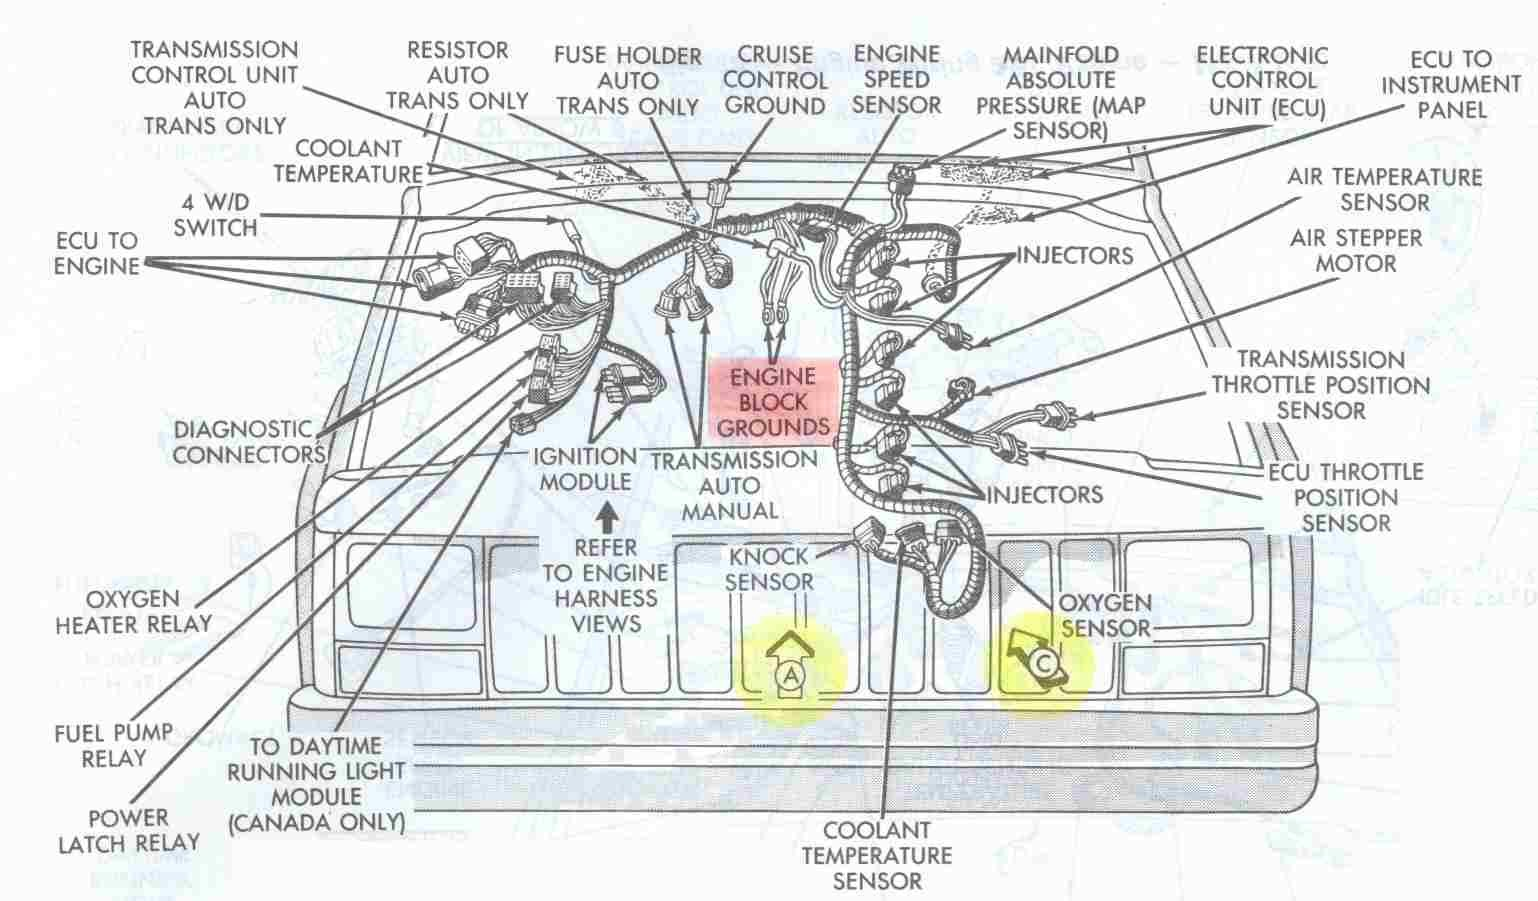 1996 jeep cherokee pcm wiring diagram 2000 honda prelude stereo 1999 unique